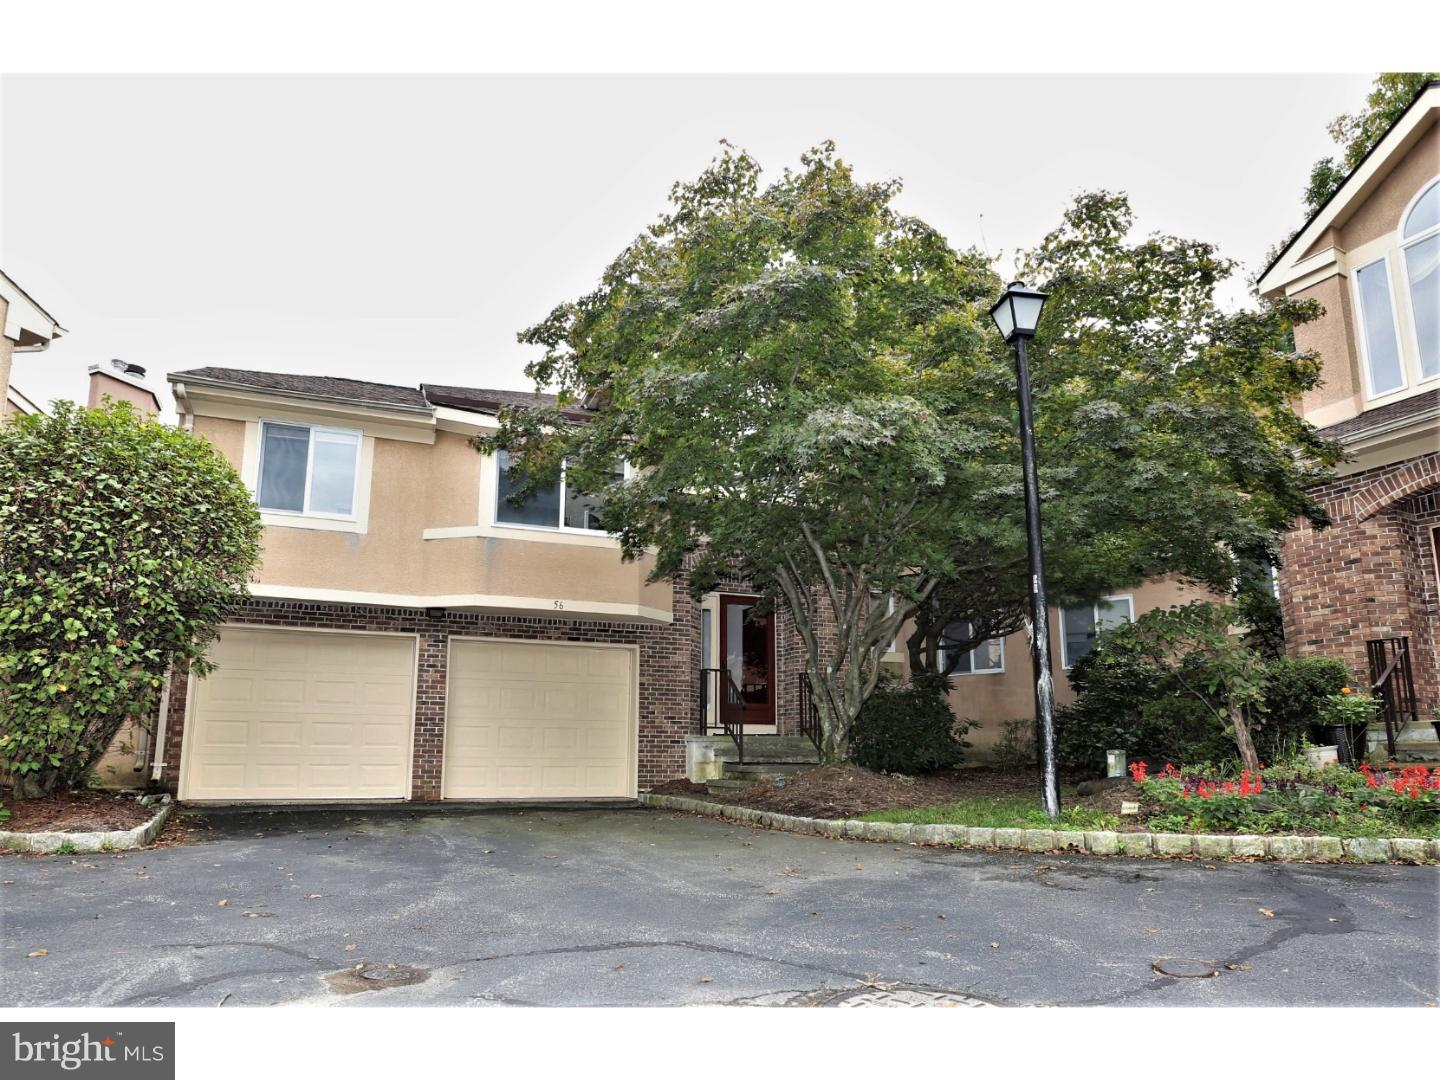 56 KINGSLAND CIRCLE, MONMOUTH JCT, NJ 08852